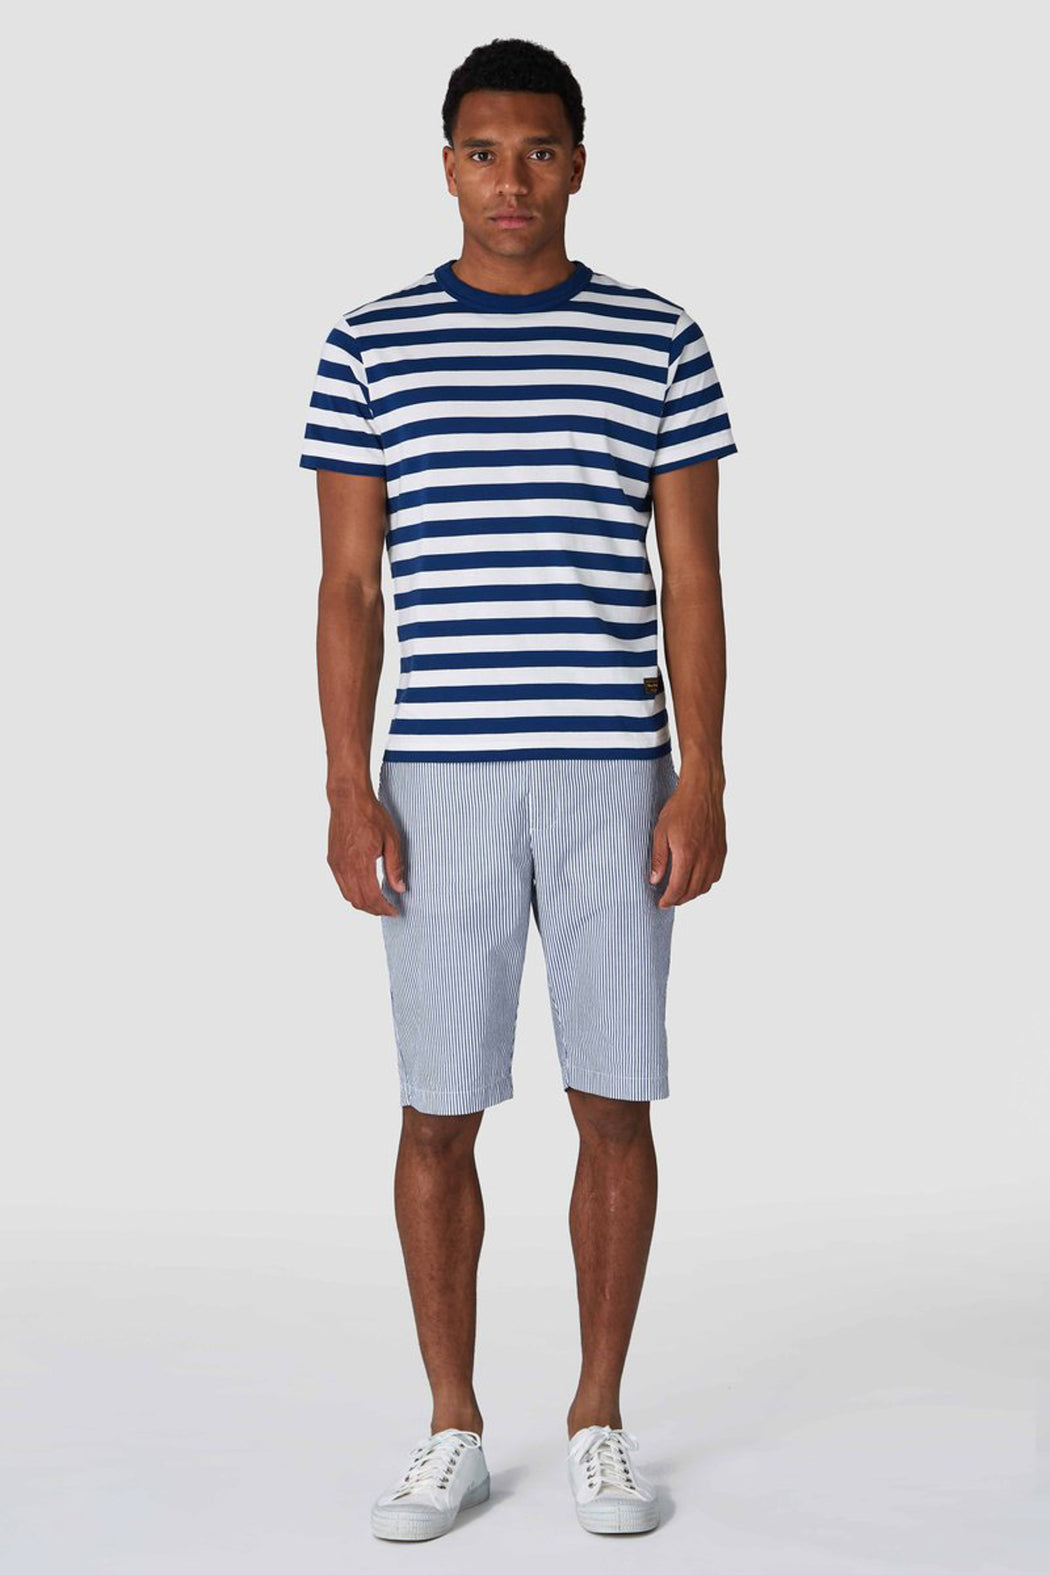 CRONUS Shorts navy fine stripe